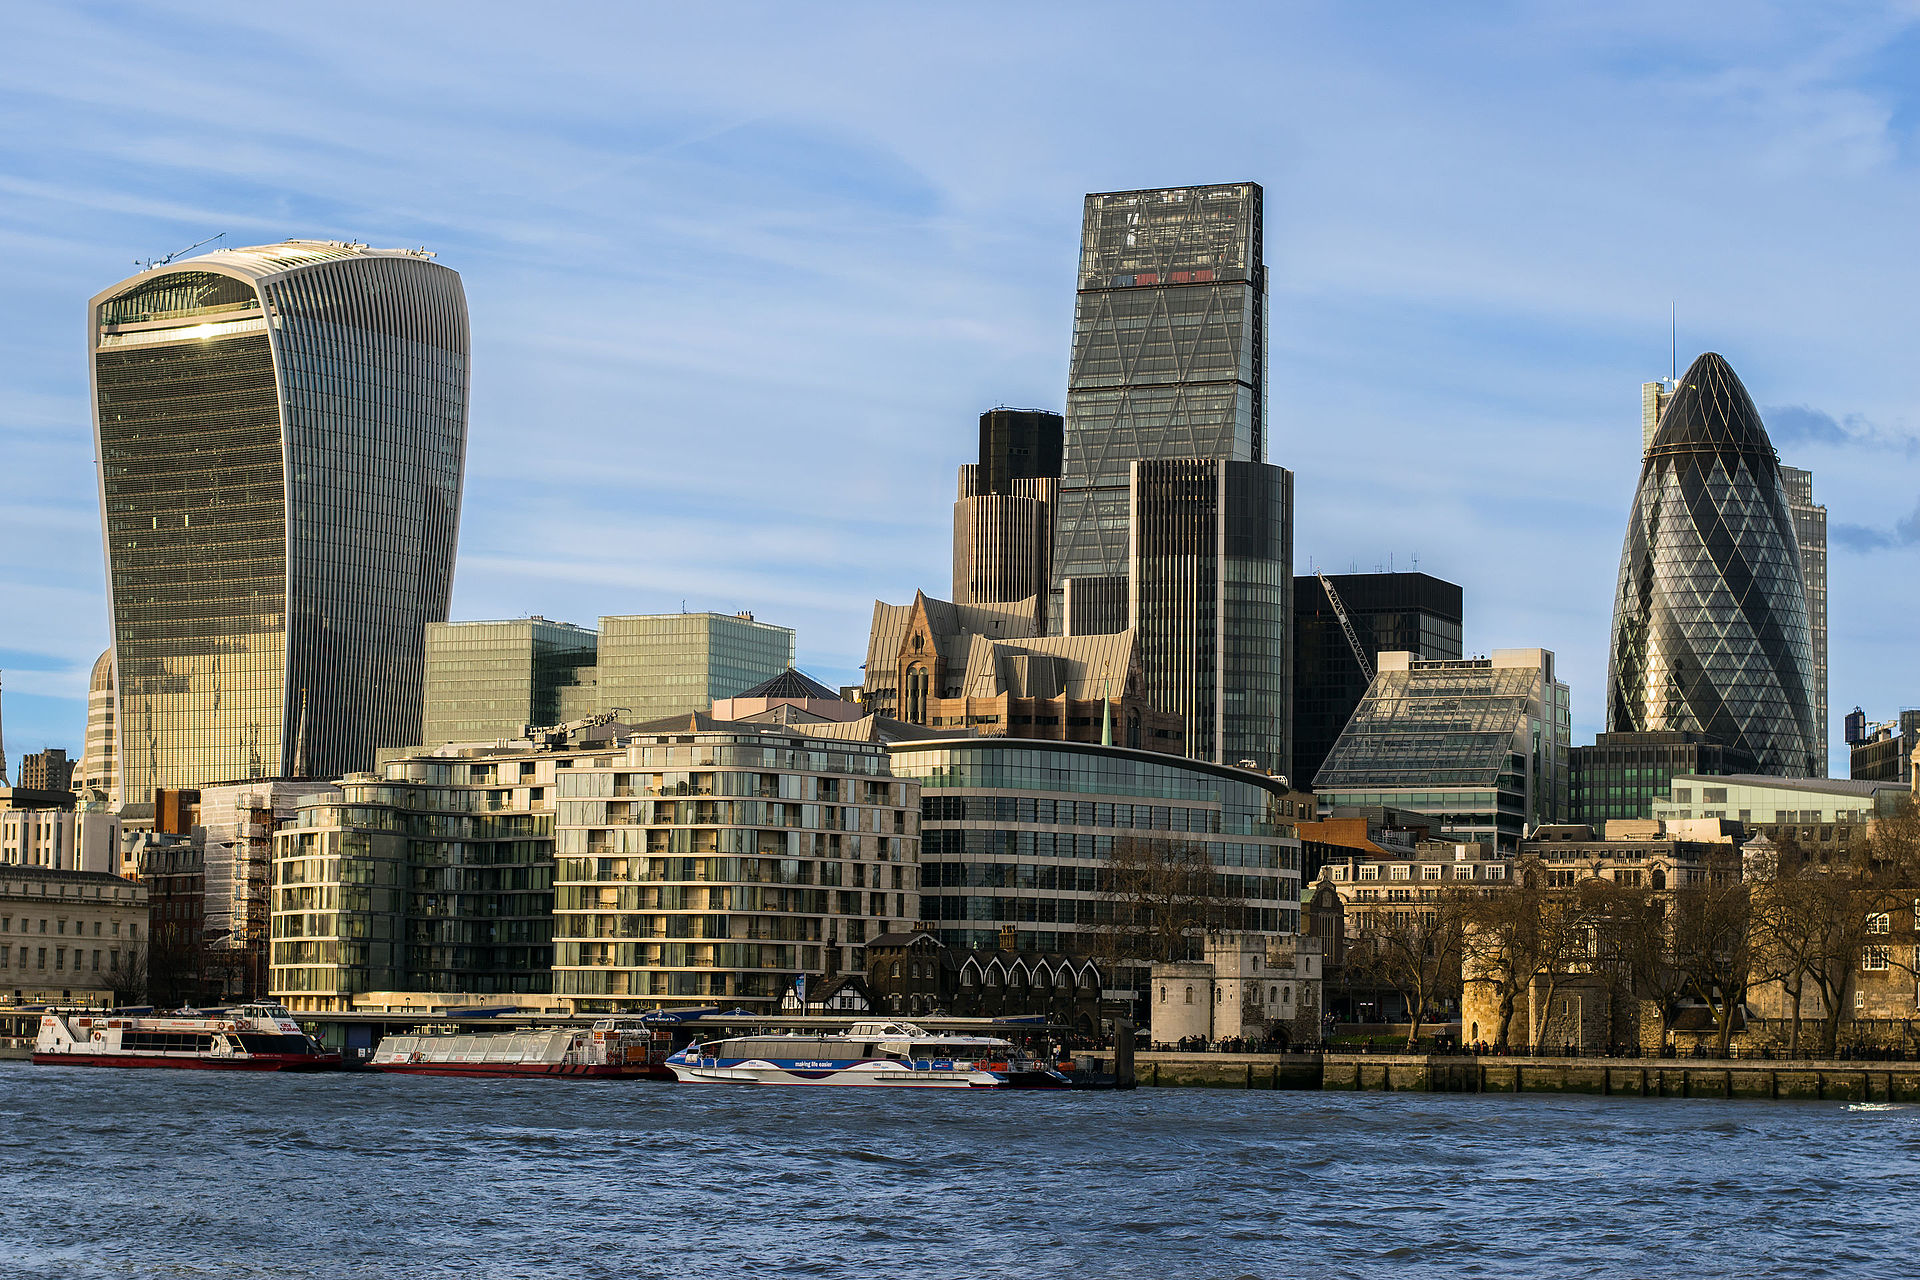 The eastern part of the City of London, seen from the south bank of the Thames in February 2016